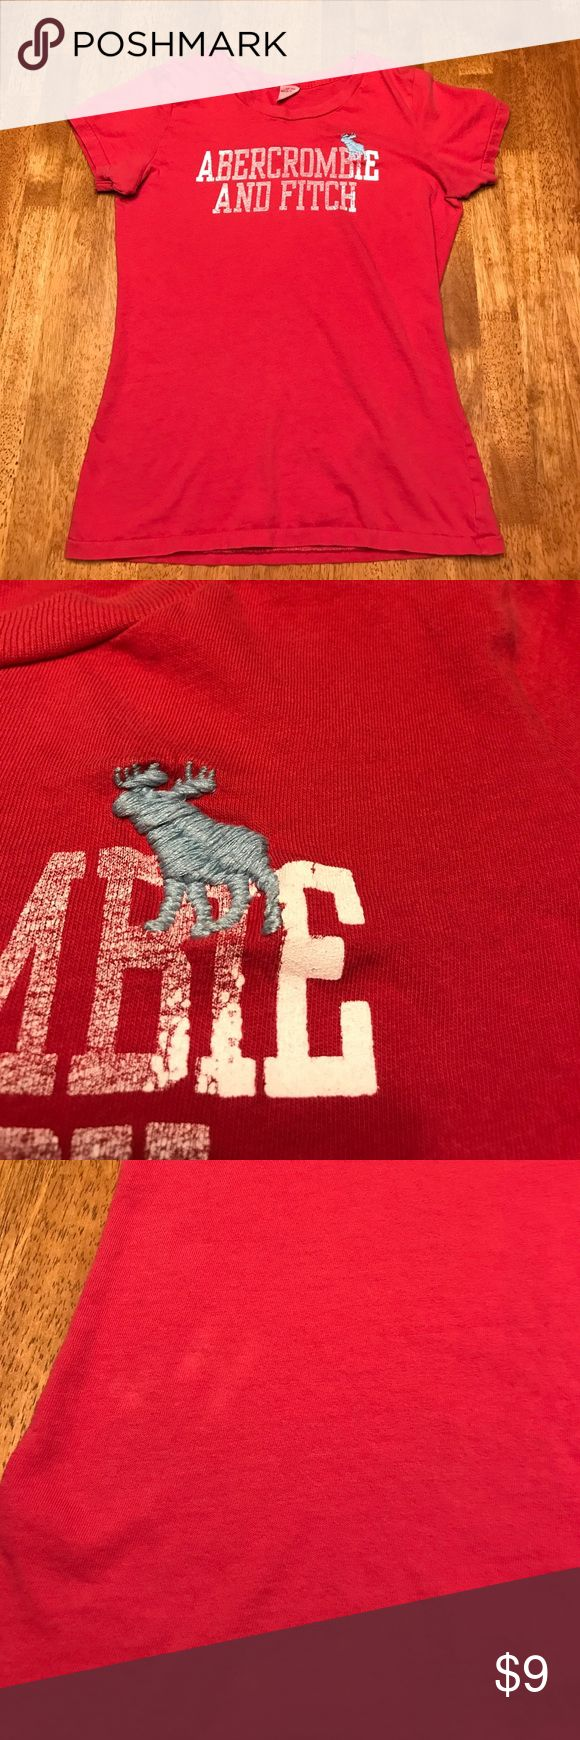 Abercrombie and Fitch T-shirt Red Abercrombie and Fitch t-shirt. Moose is embroidered and letters are screen printed.  Size is large but fits like a medium as this brand runs slim. There are two lightened/ discolored areas to bottom front of shirt per picture. As this brand often has a worn/aged look these marks may be original to design and not actual flaws. Abercrombie & Fitch Tops Tees - Short Sleeve